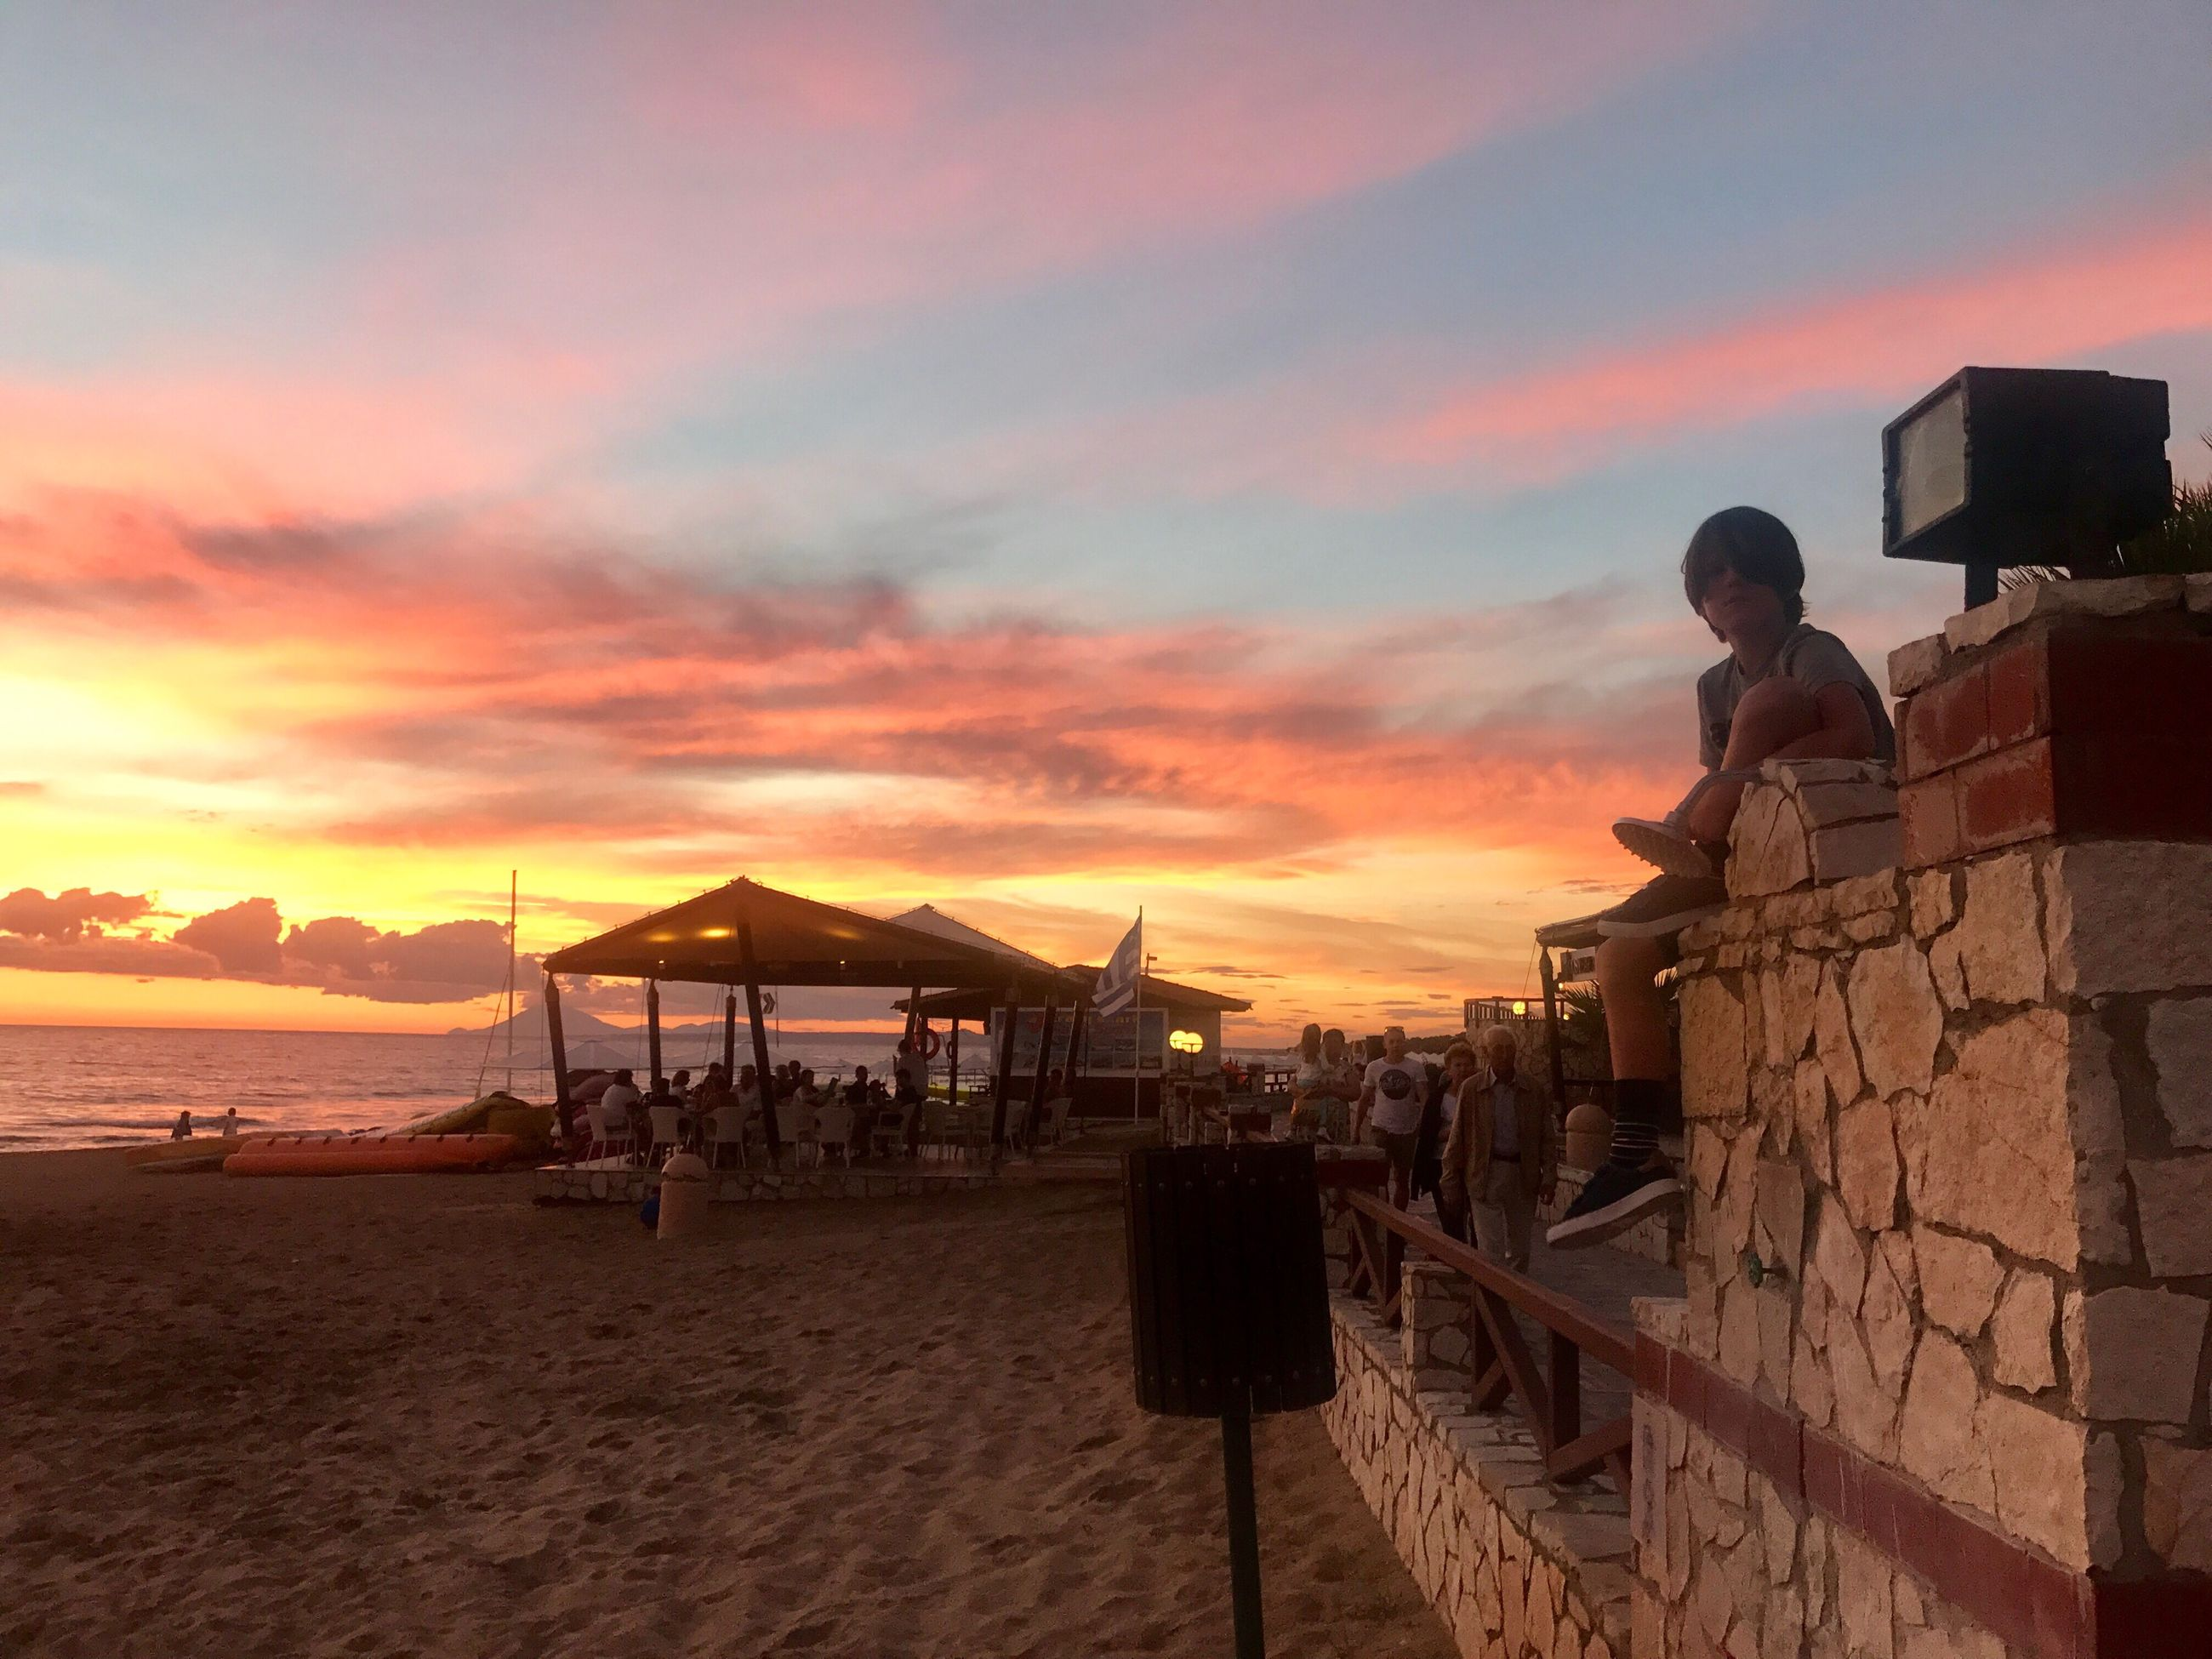 sunset, beach, sand, sea, nature, real people, sky, orange color, beauty in nature, outdoors, tranquil scene, tranquility, cloud - sky, scenics, vacations, leisure activity, lifestyles, one person, men, water, architecture, horizon over water, day, people